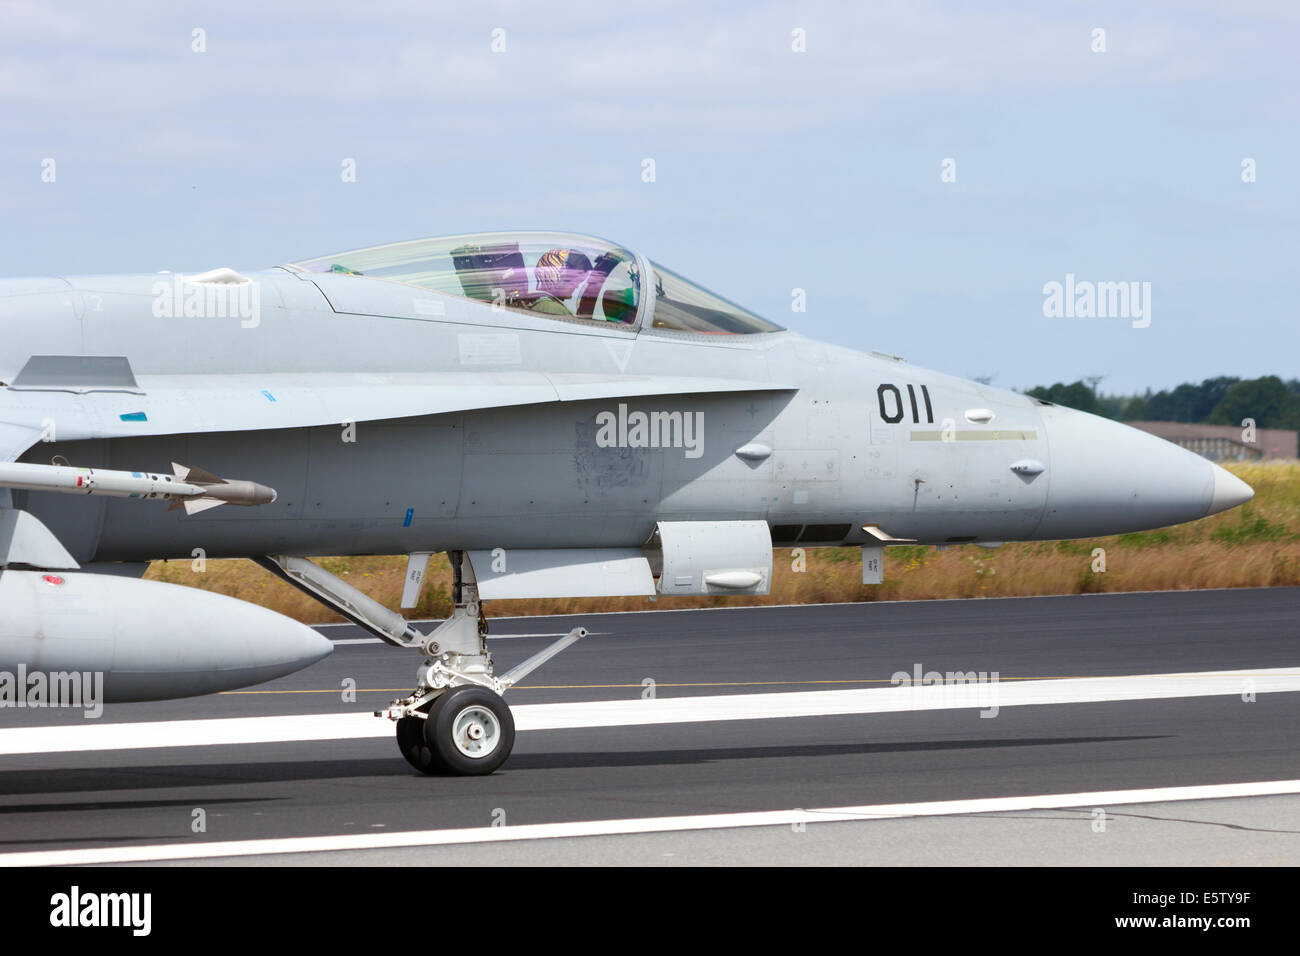 Swiss Air Force F/A-18C Hornet at the NATO Tigermeet on June 23rd, 2014 in Schleswig, Germany. - Stock Image